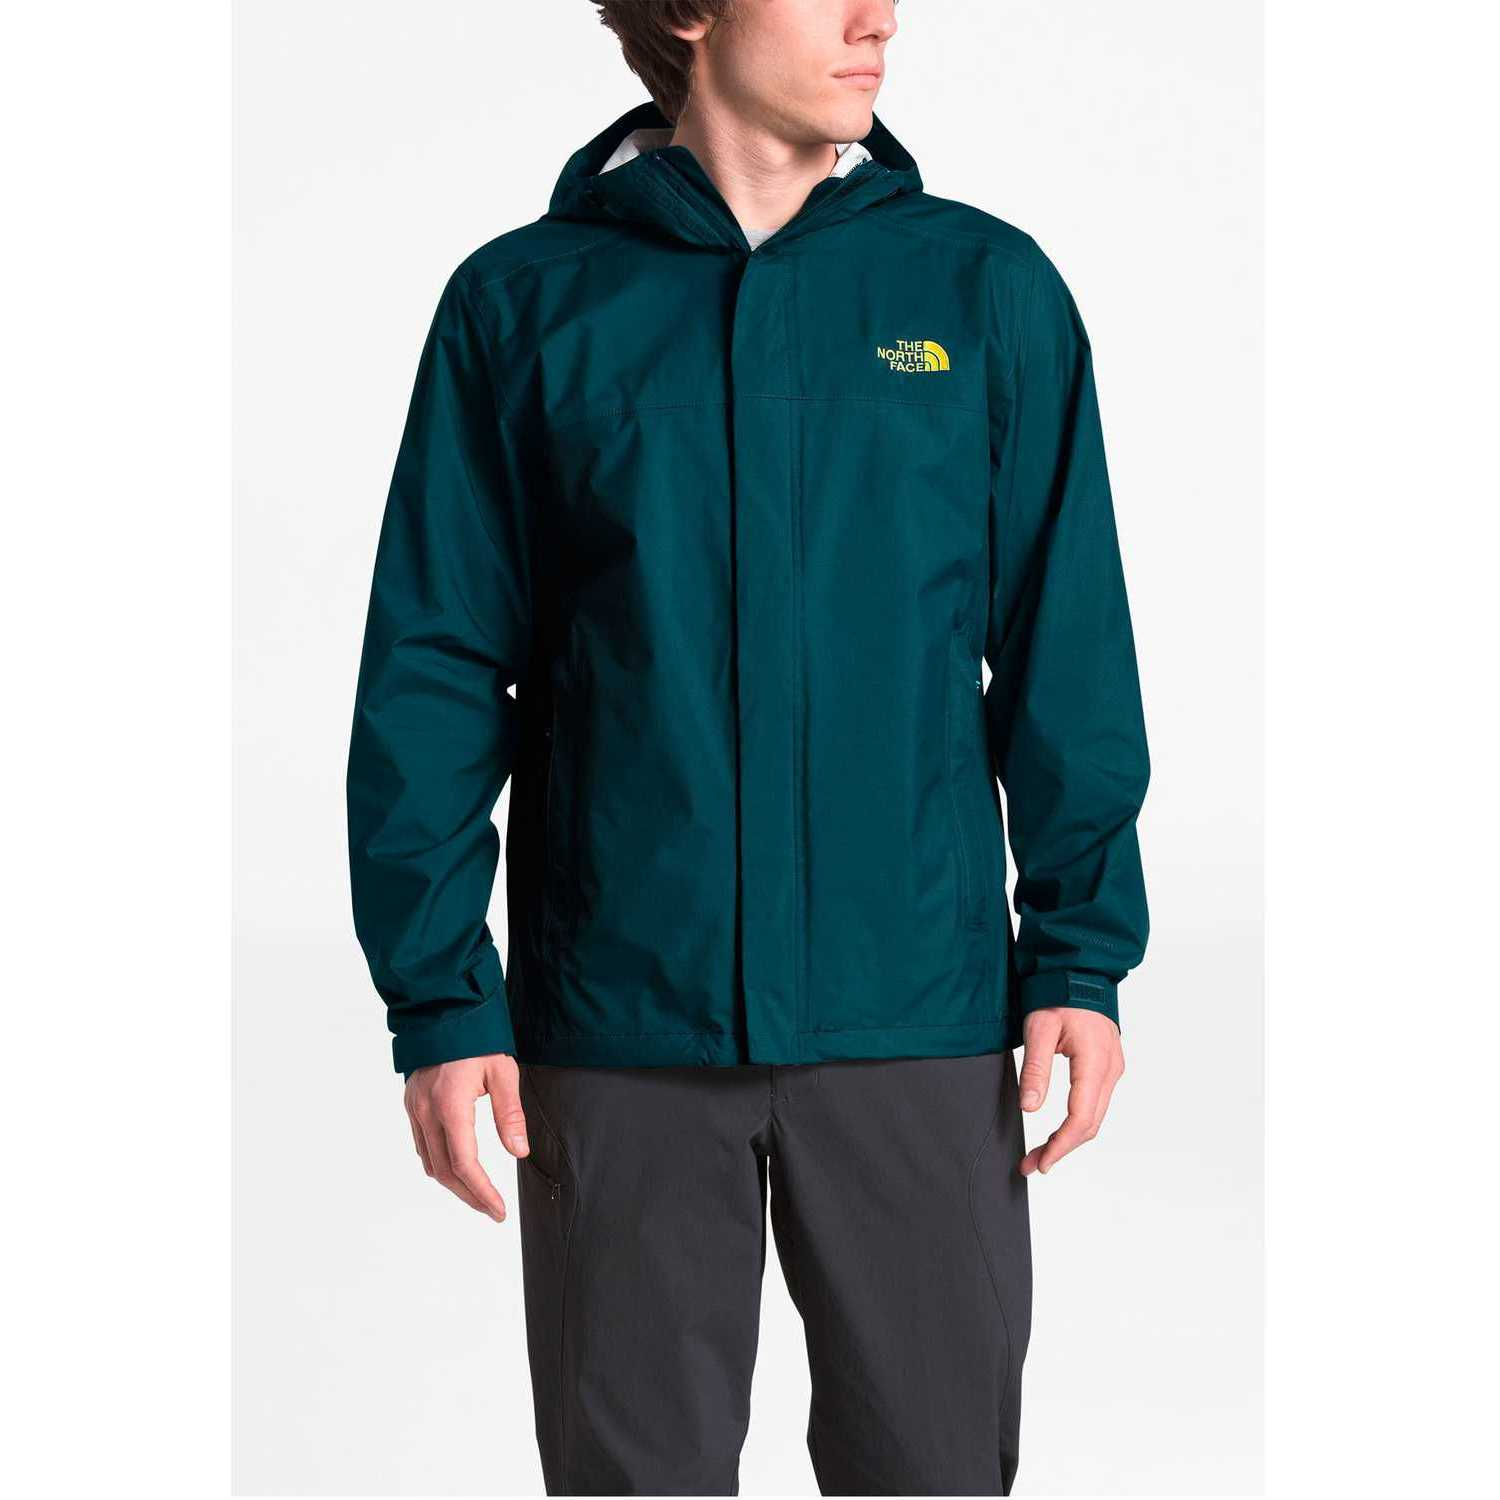 The North Face m venture 2 jacket Acero Rompevientos